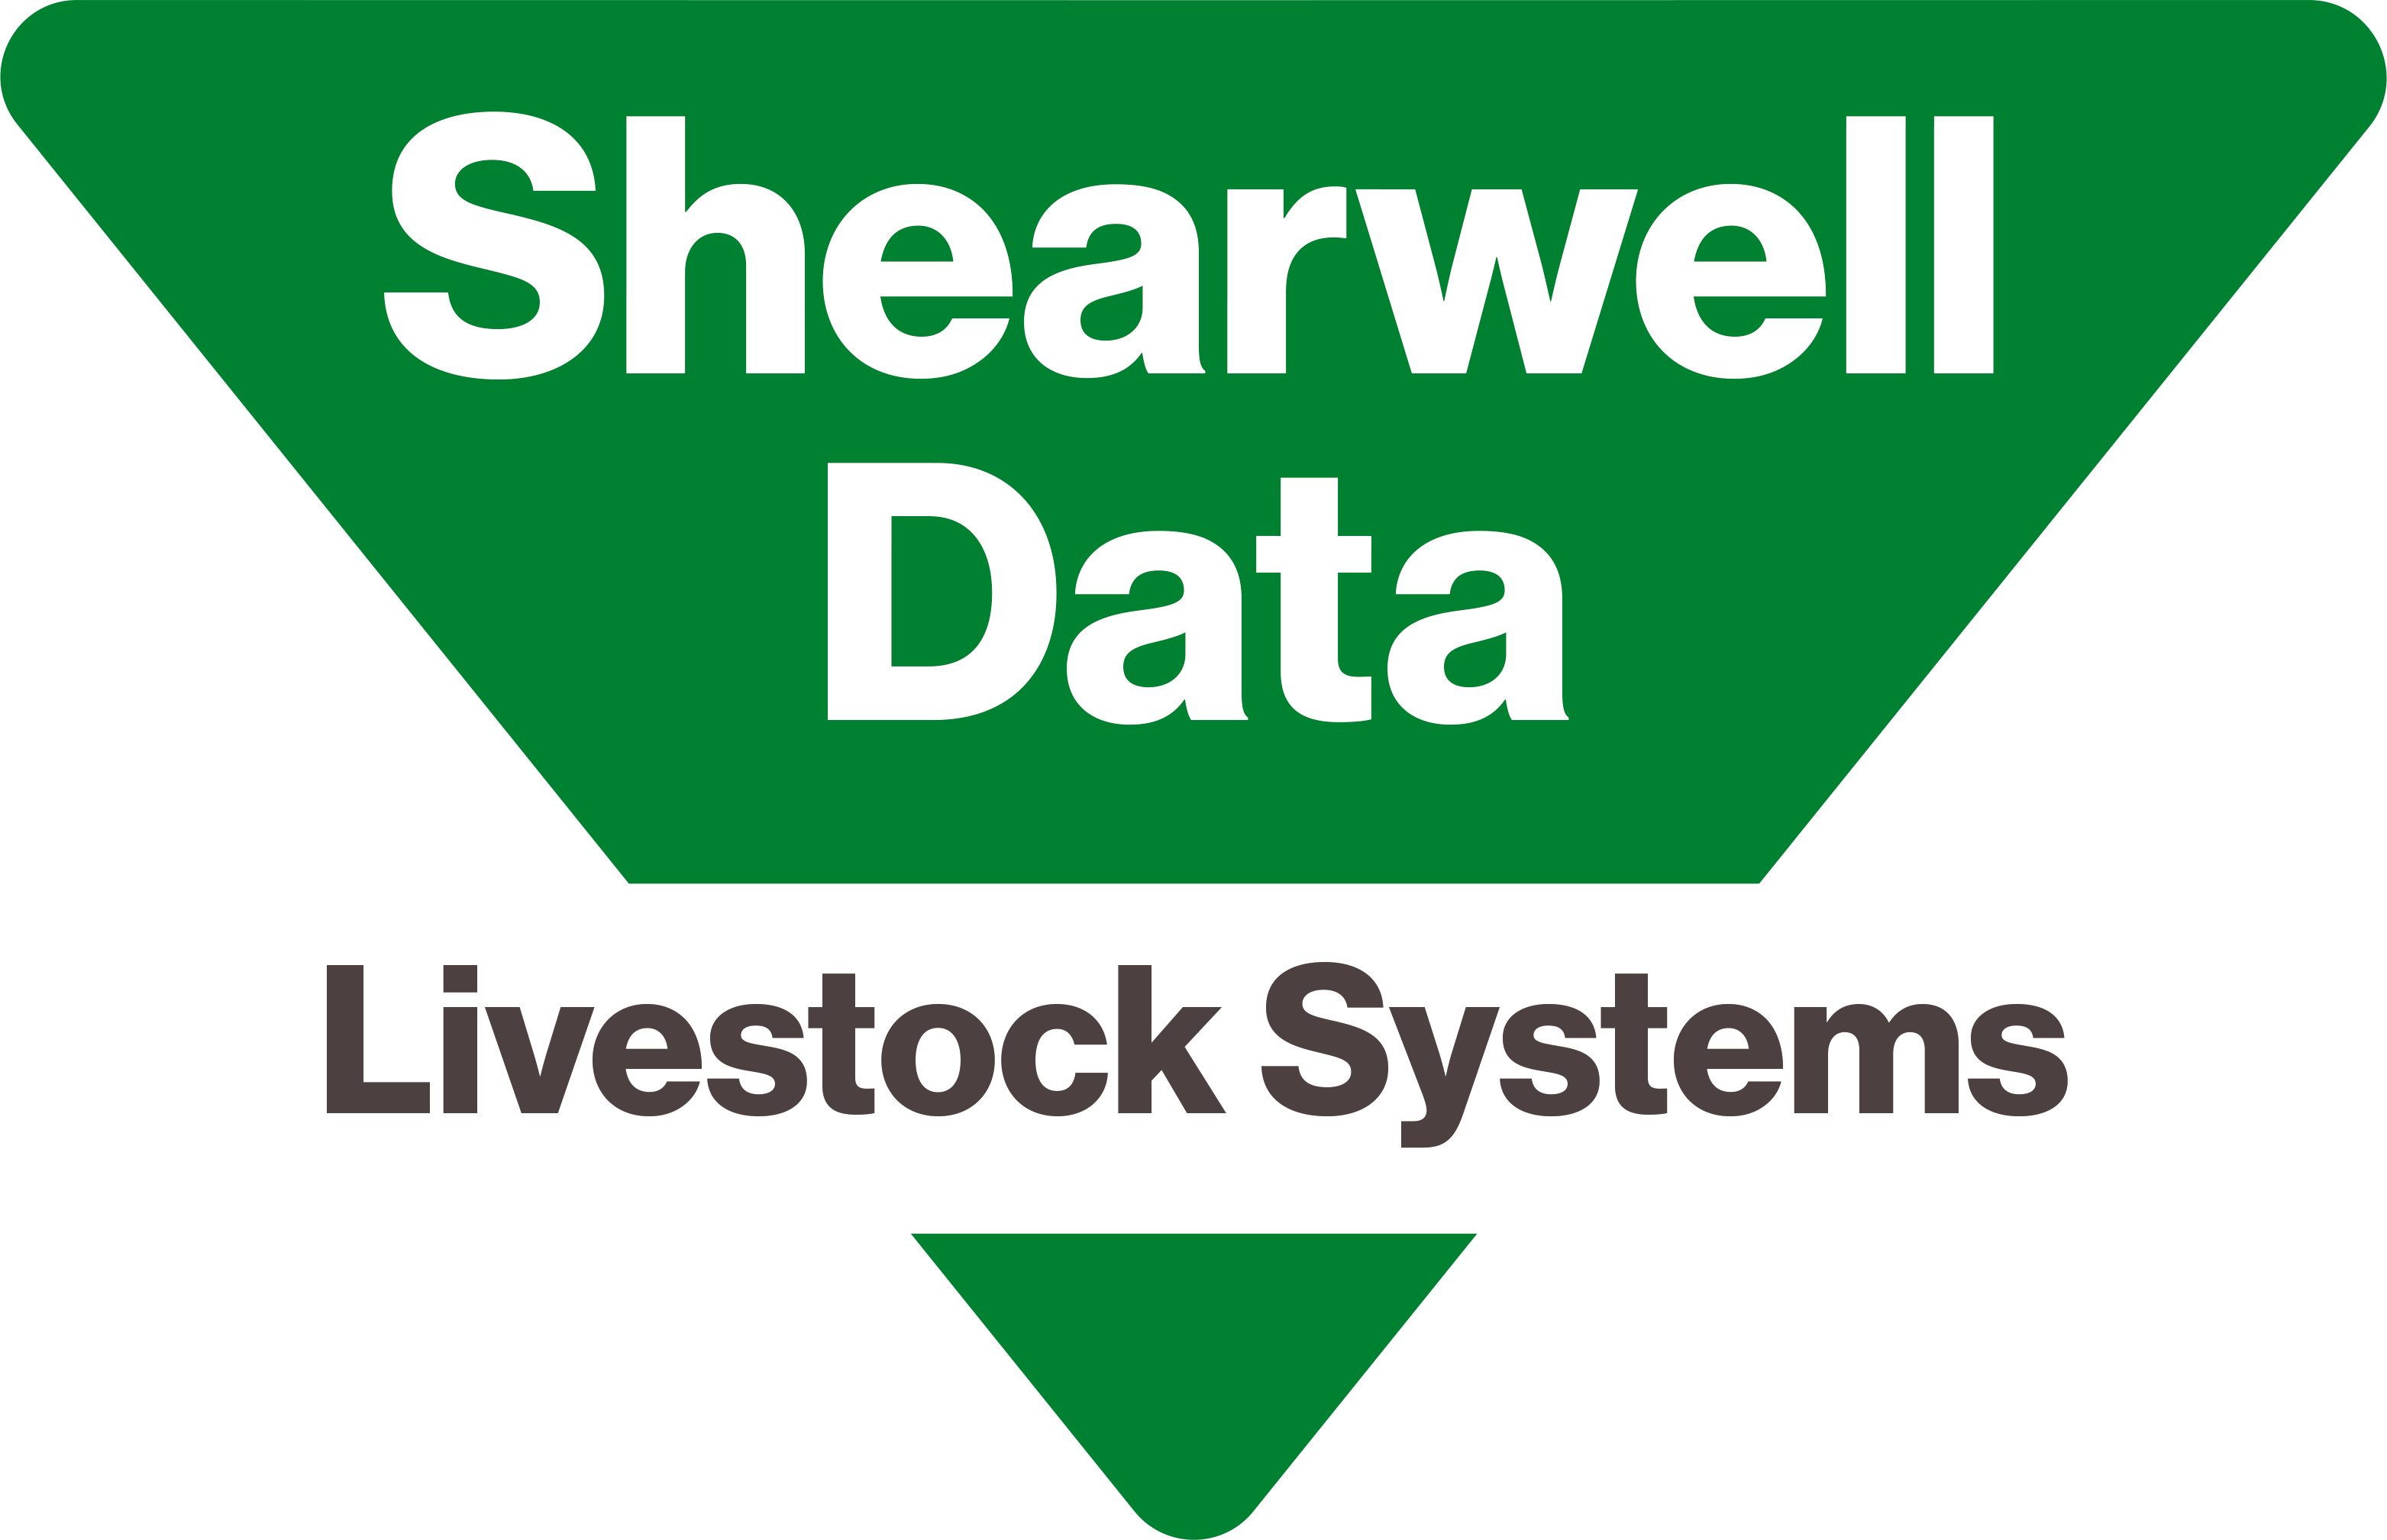 Shearwell Data